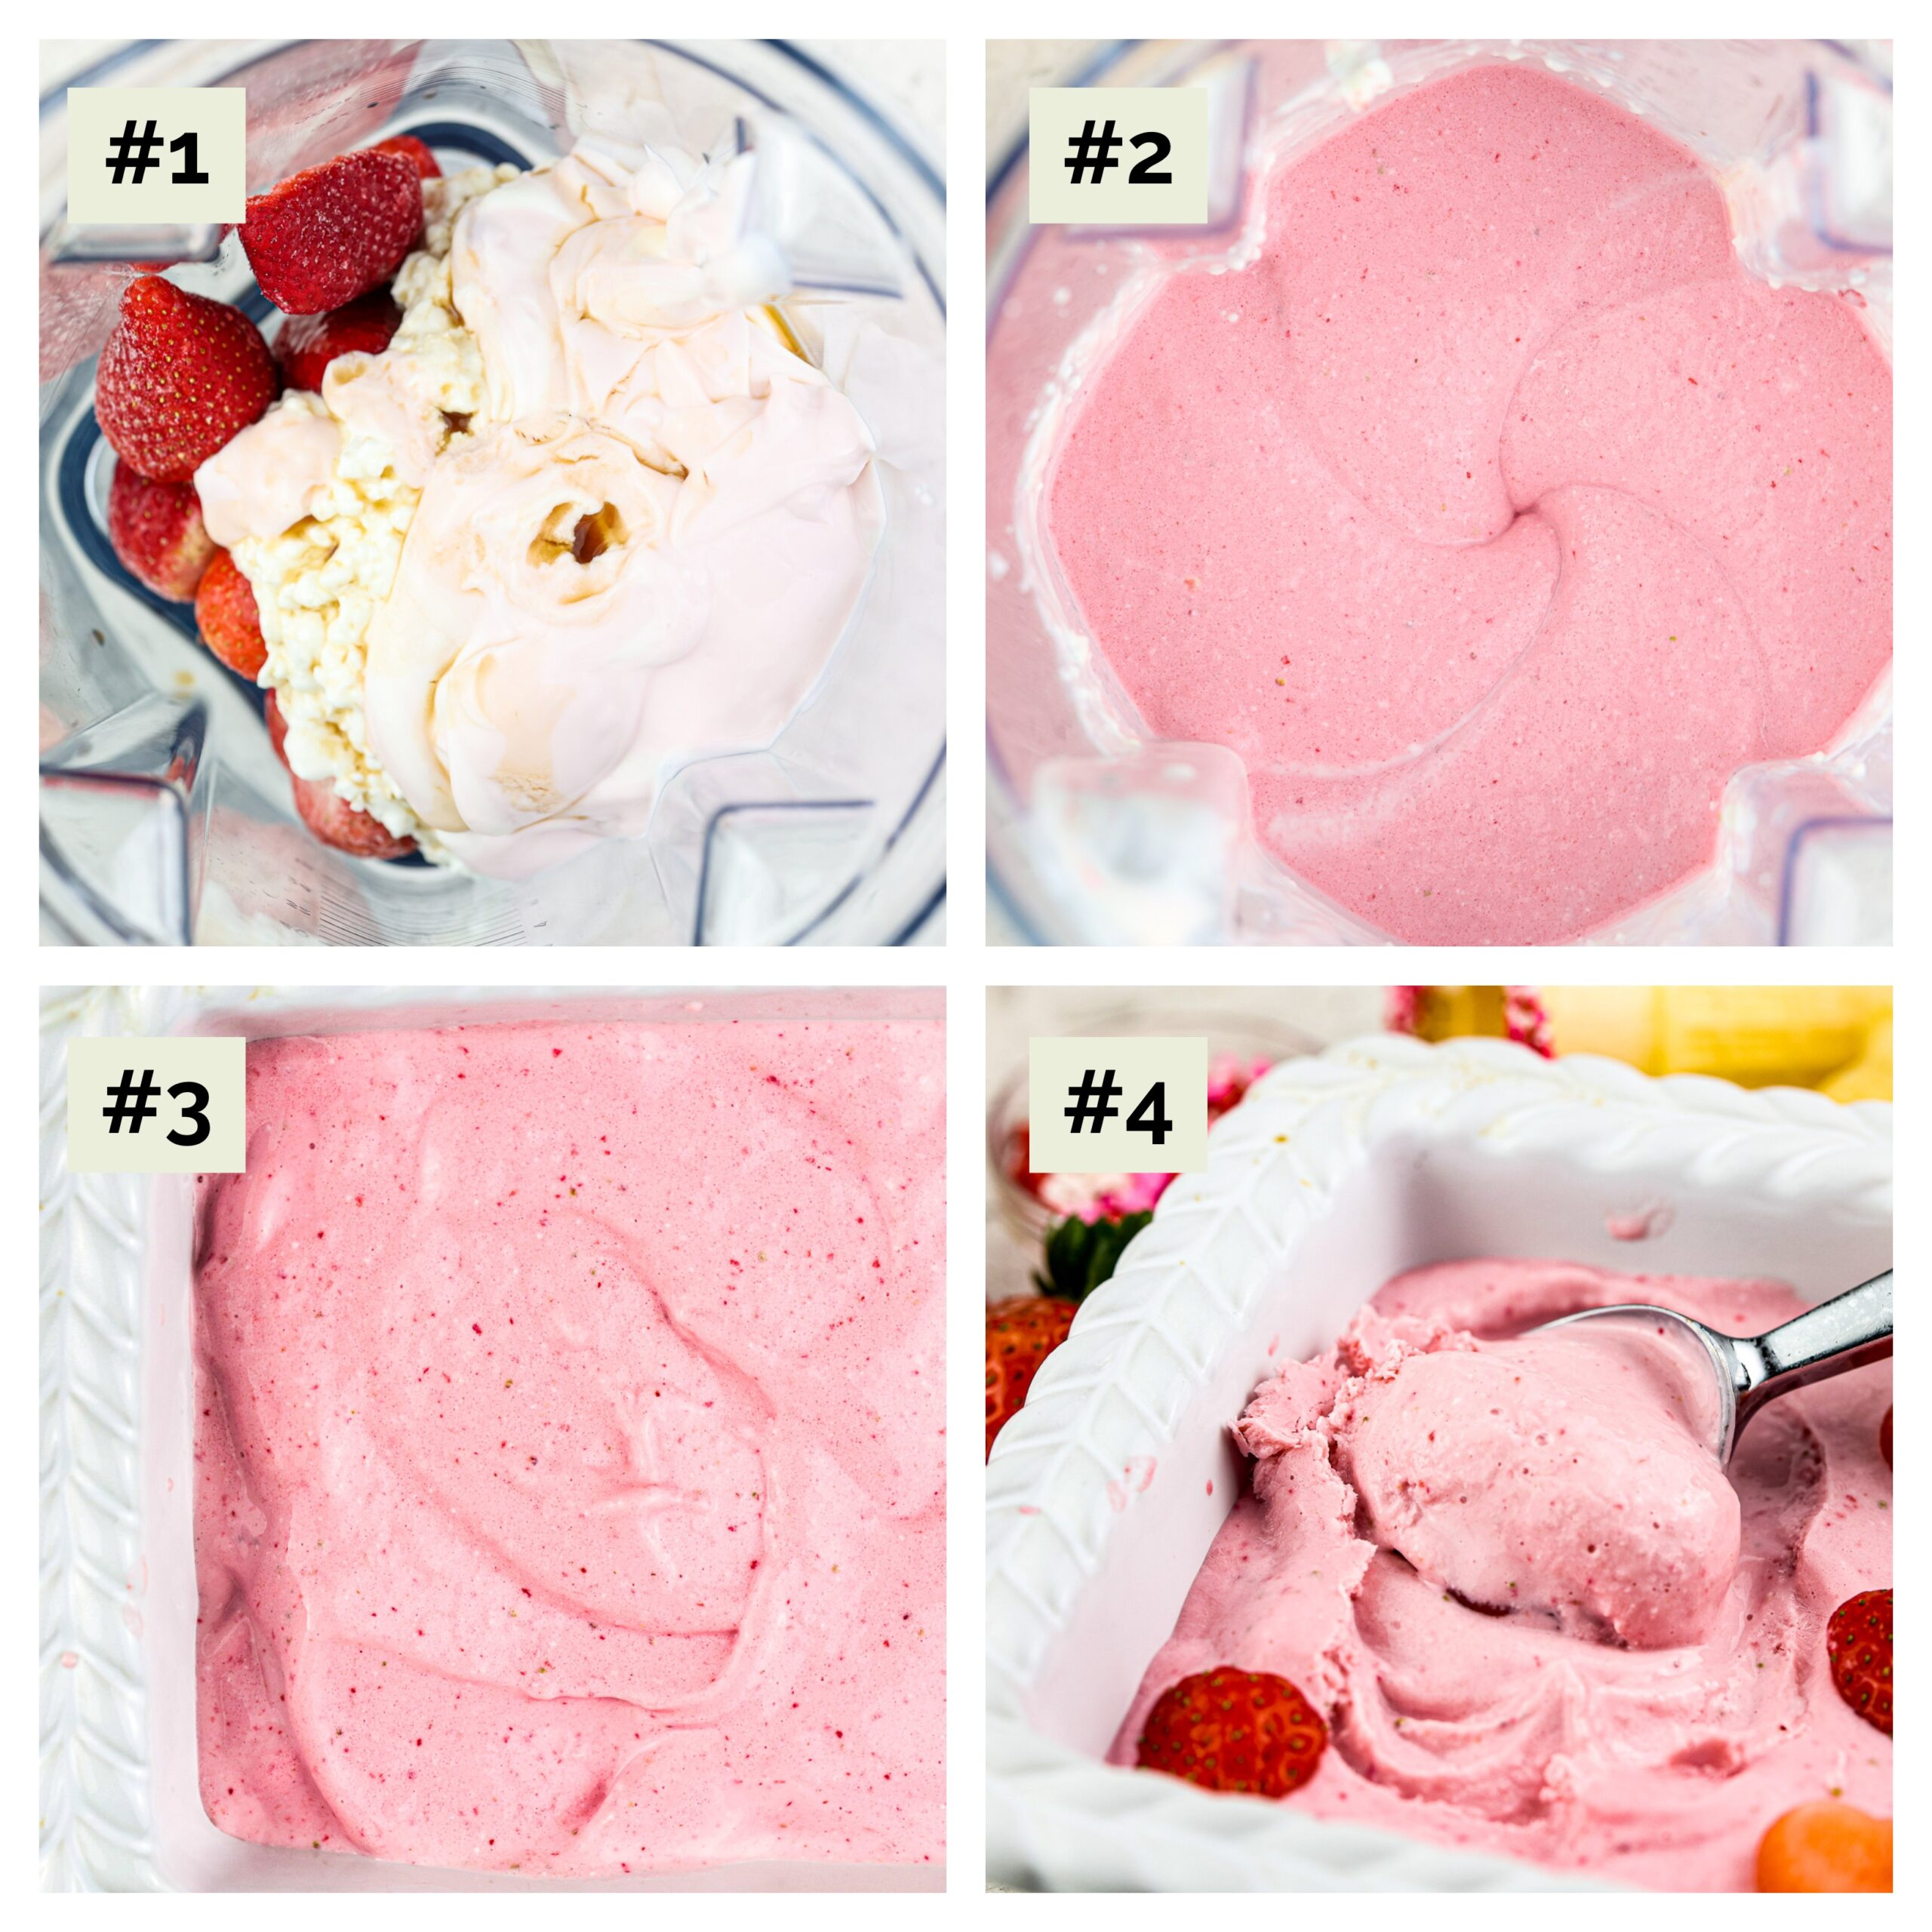 Four picture collage with stages of making Strawberry Nice Cream in a blender.